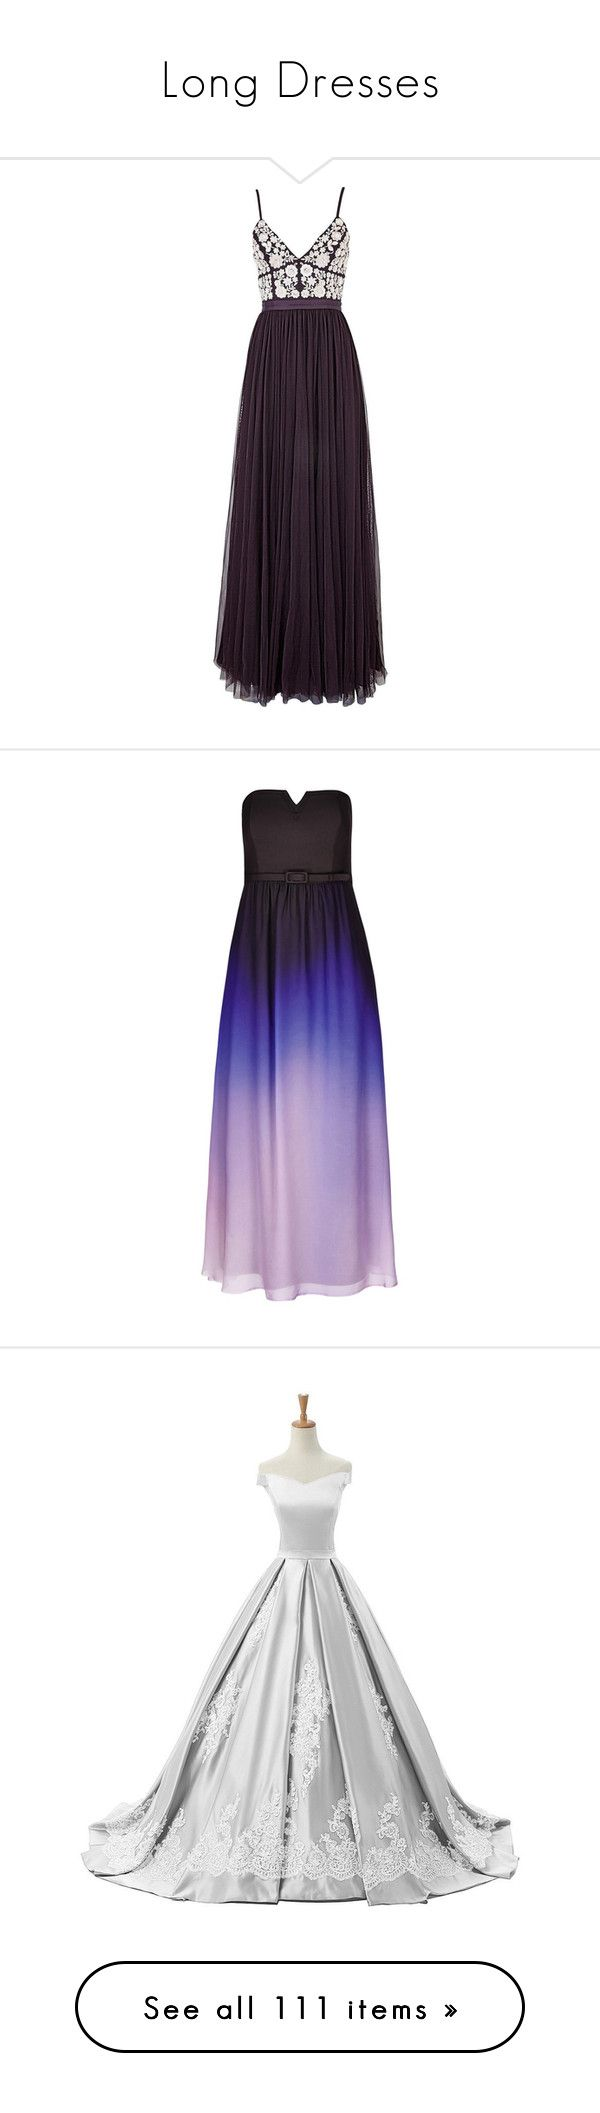 """Long Dresses"" by natalialovesnutella12 ❤ liked on Polyvore featuring dresses, gowns, fancy dresses, long dress, vestidos, long evening dresses, purple maxi skirt, fitted maxi skirt, tulle maxi skirt and sequin maxi skirt"